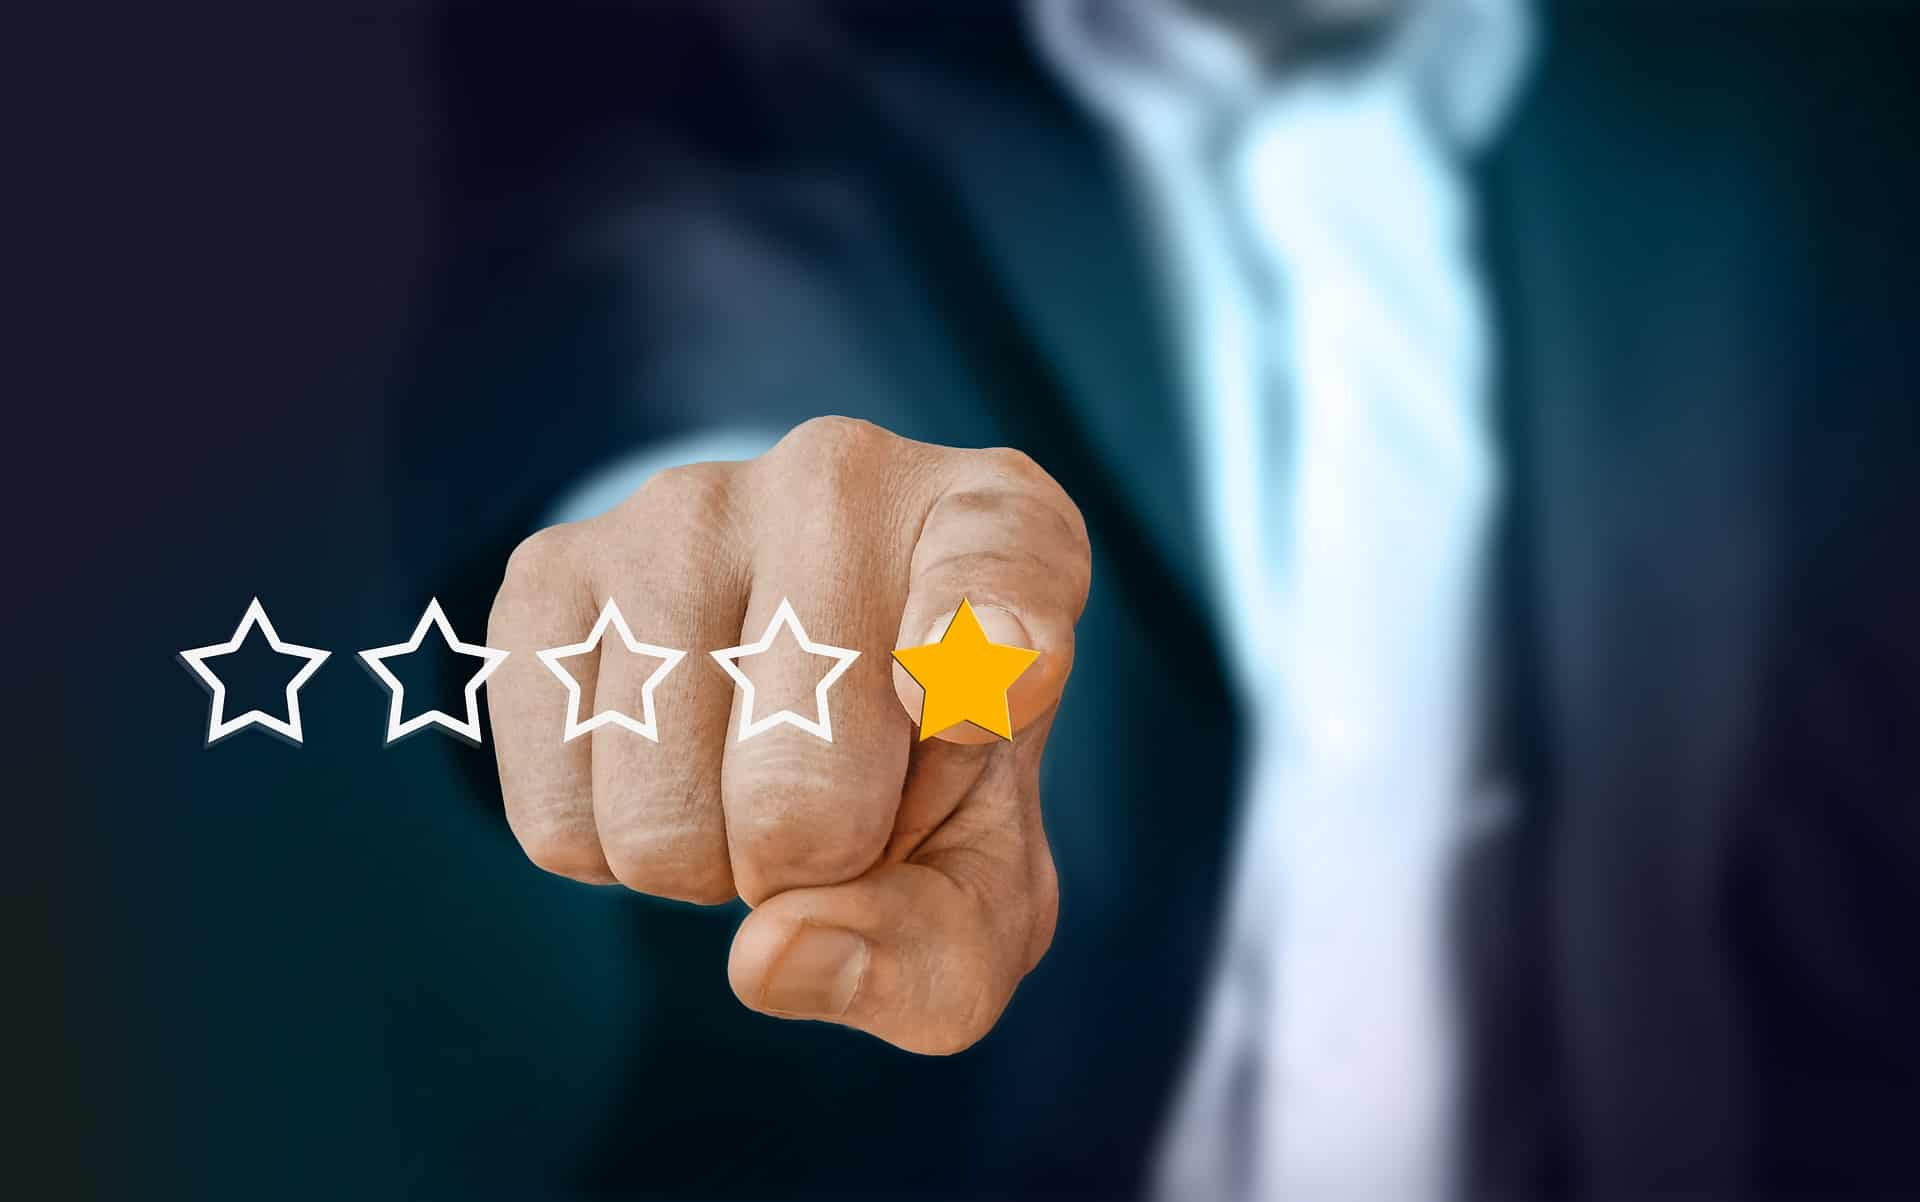 Being Proactive With Getting Reviews